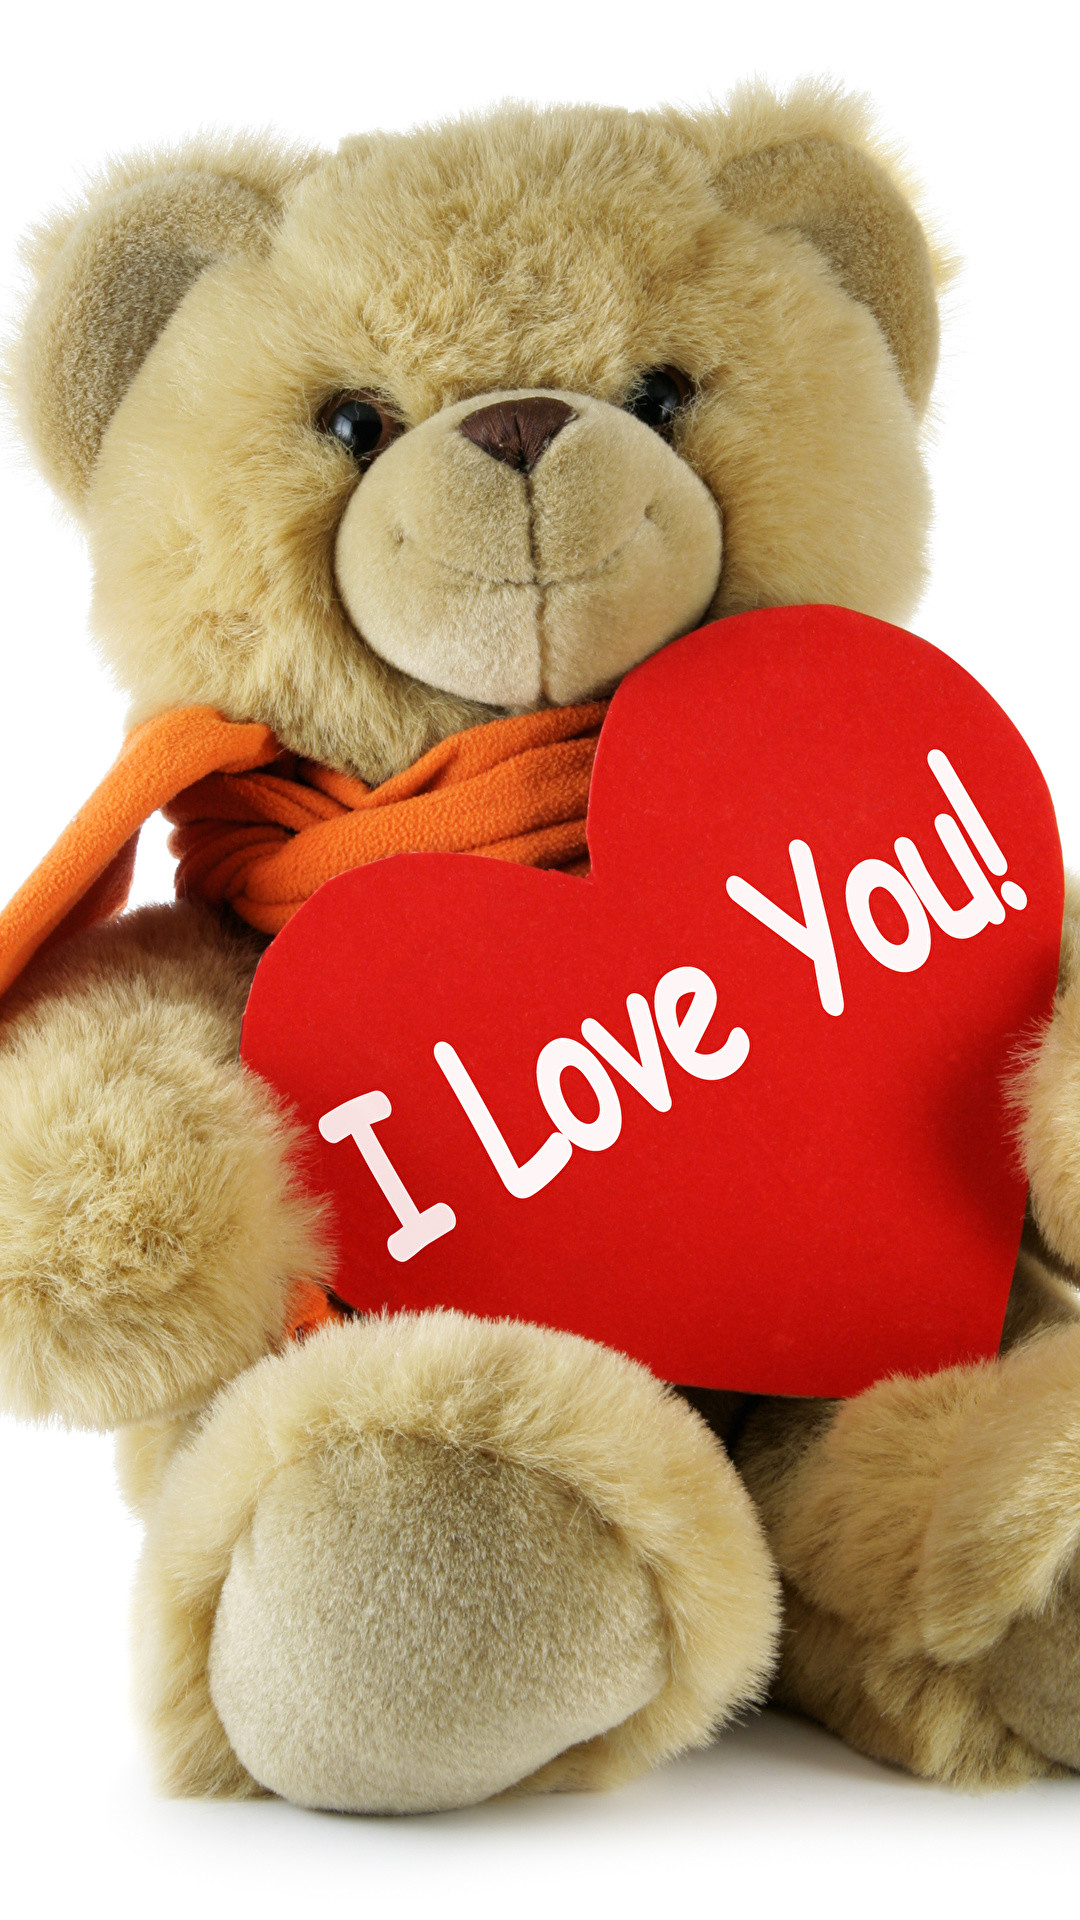 Love Teddy Bear Wallpapers (48+ Images